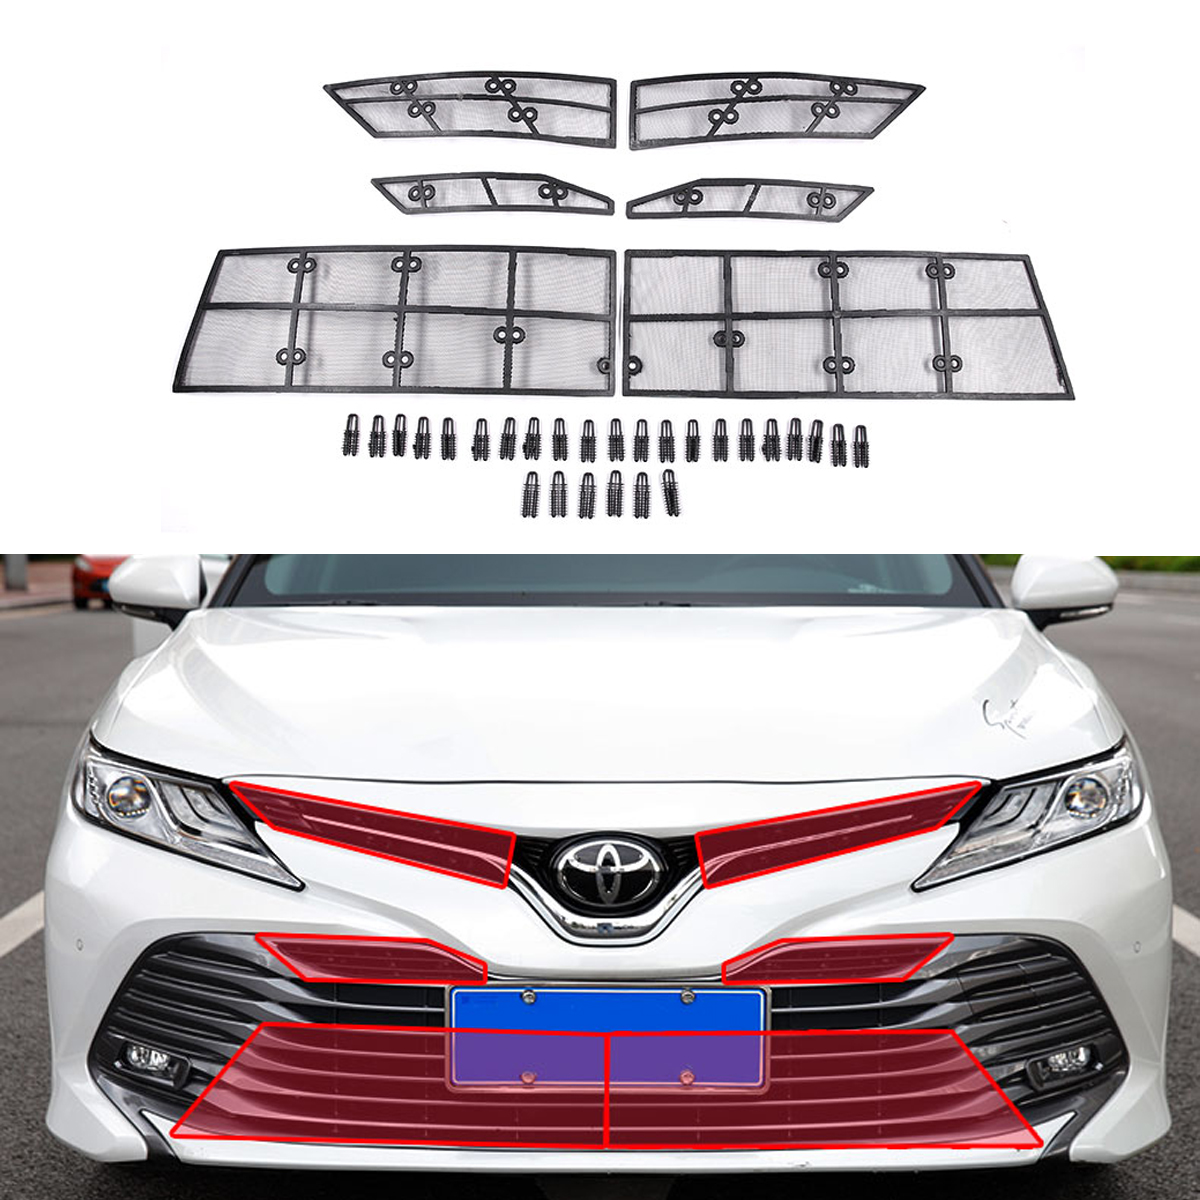 Front Grille Insect Net for Toyota Camry 2018 8th XV70 Steel Wire + Plastic Material Science AccessoriesFront Grille Insect Net for Toyota Camry 2018 8th XV70 Steel Wire + Plastic Material Science Accessories